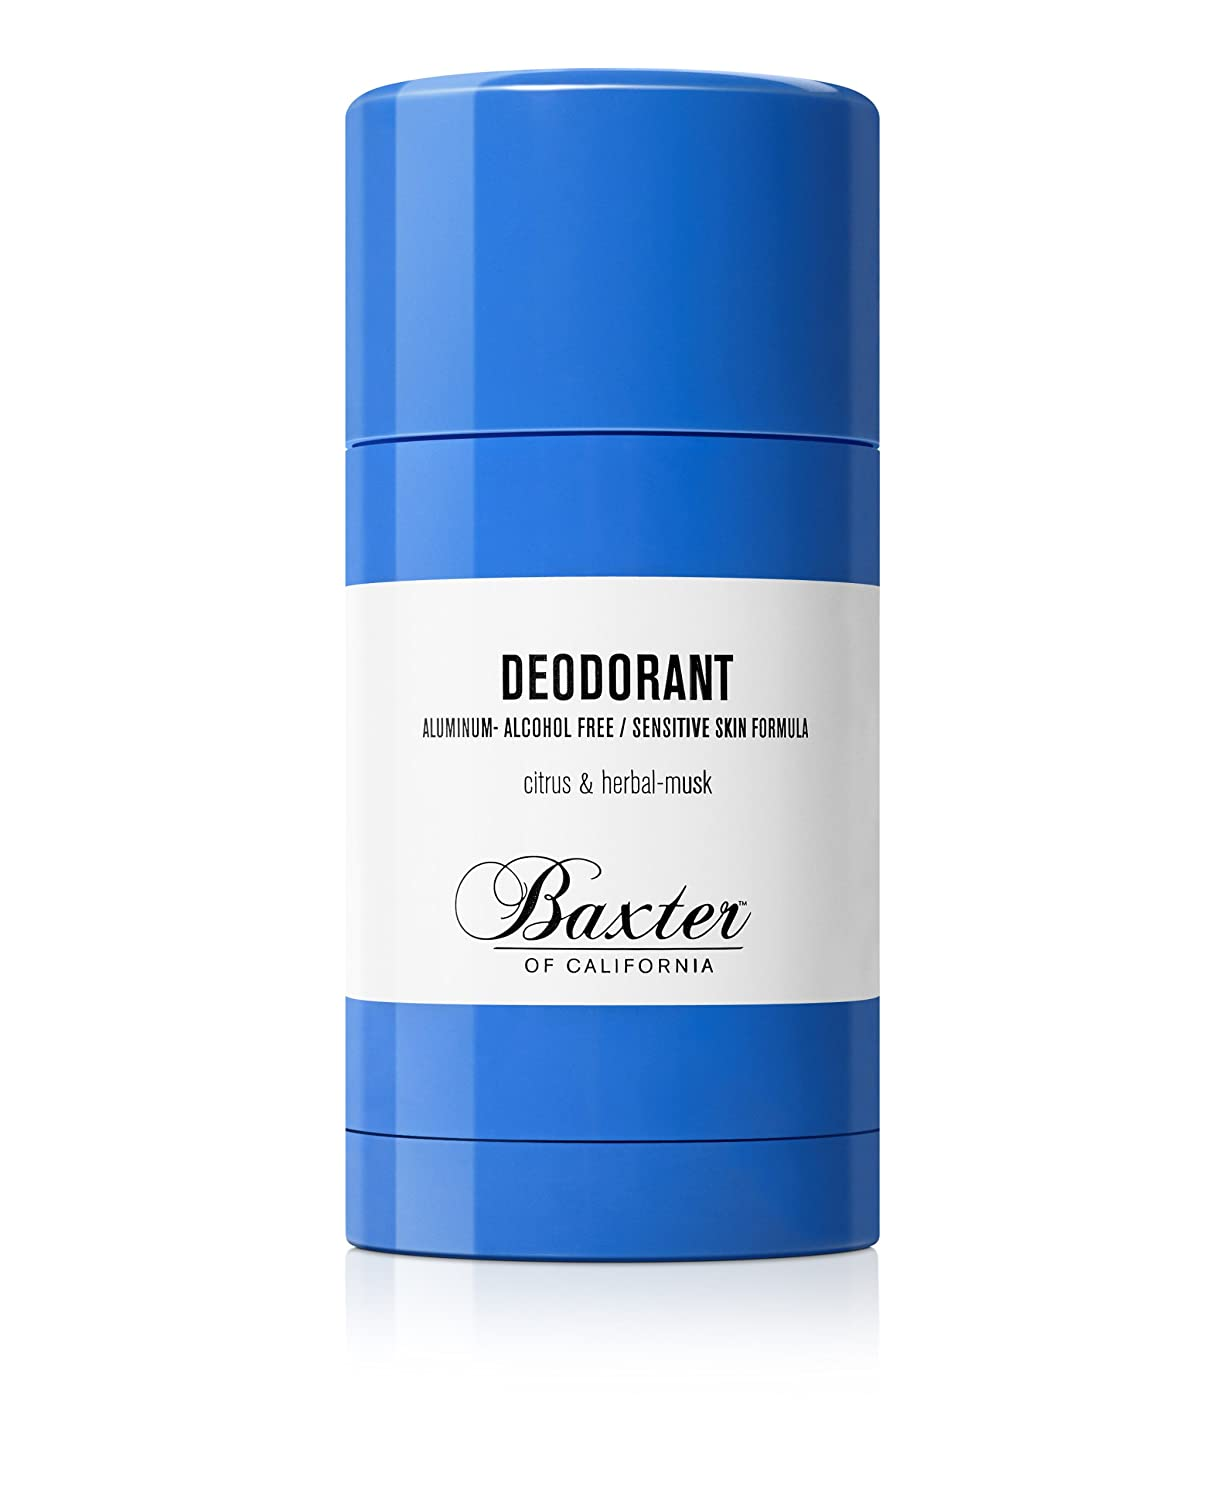 Baxter of California Deodorant for Men| Aluminum Free |Alcohol Free | Clear Stick |Citrus and Herbal-Musk